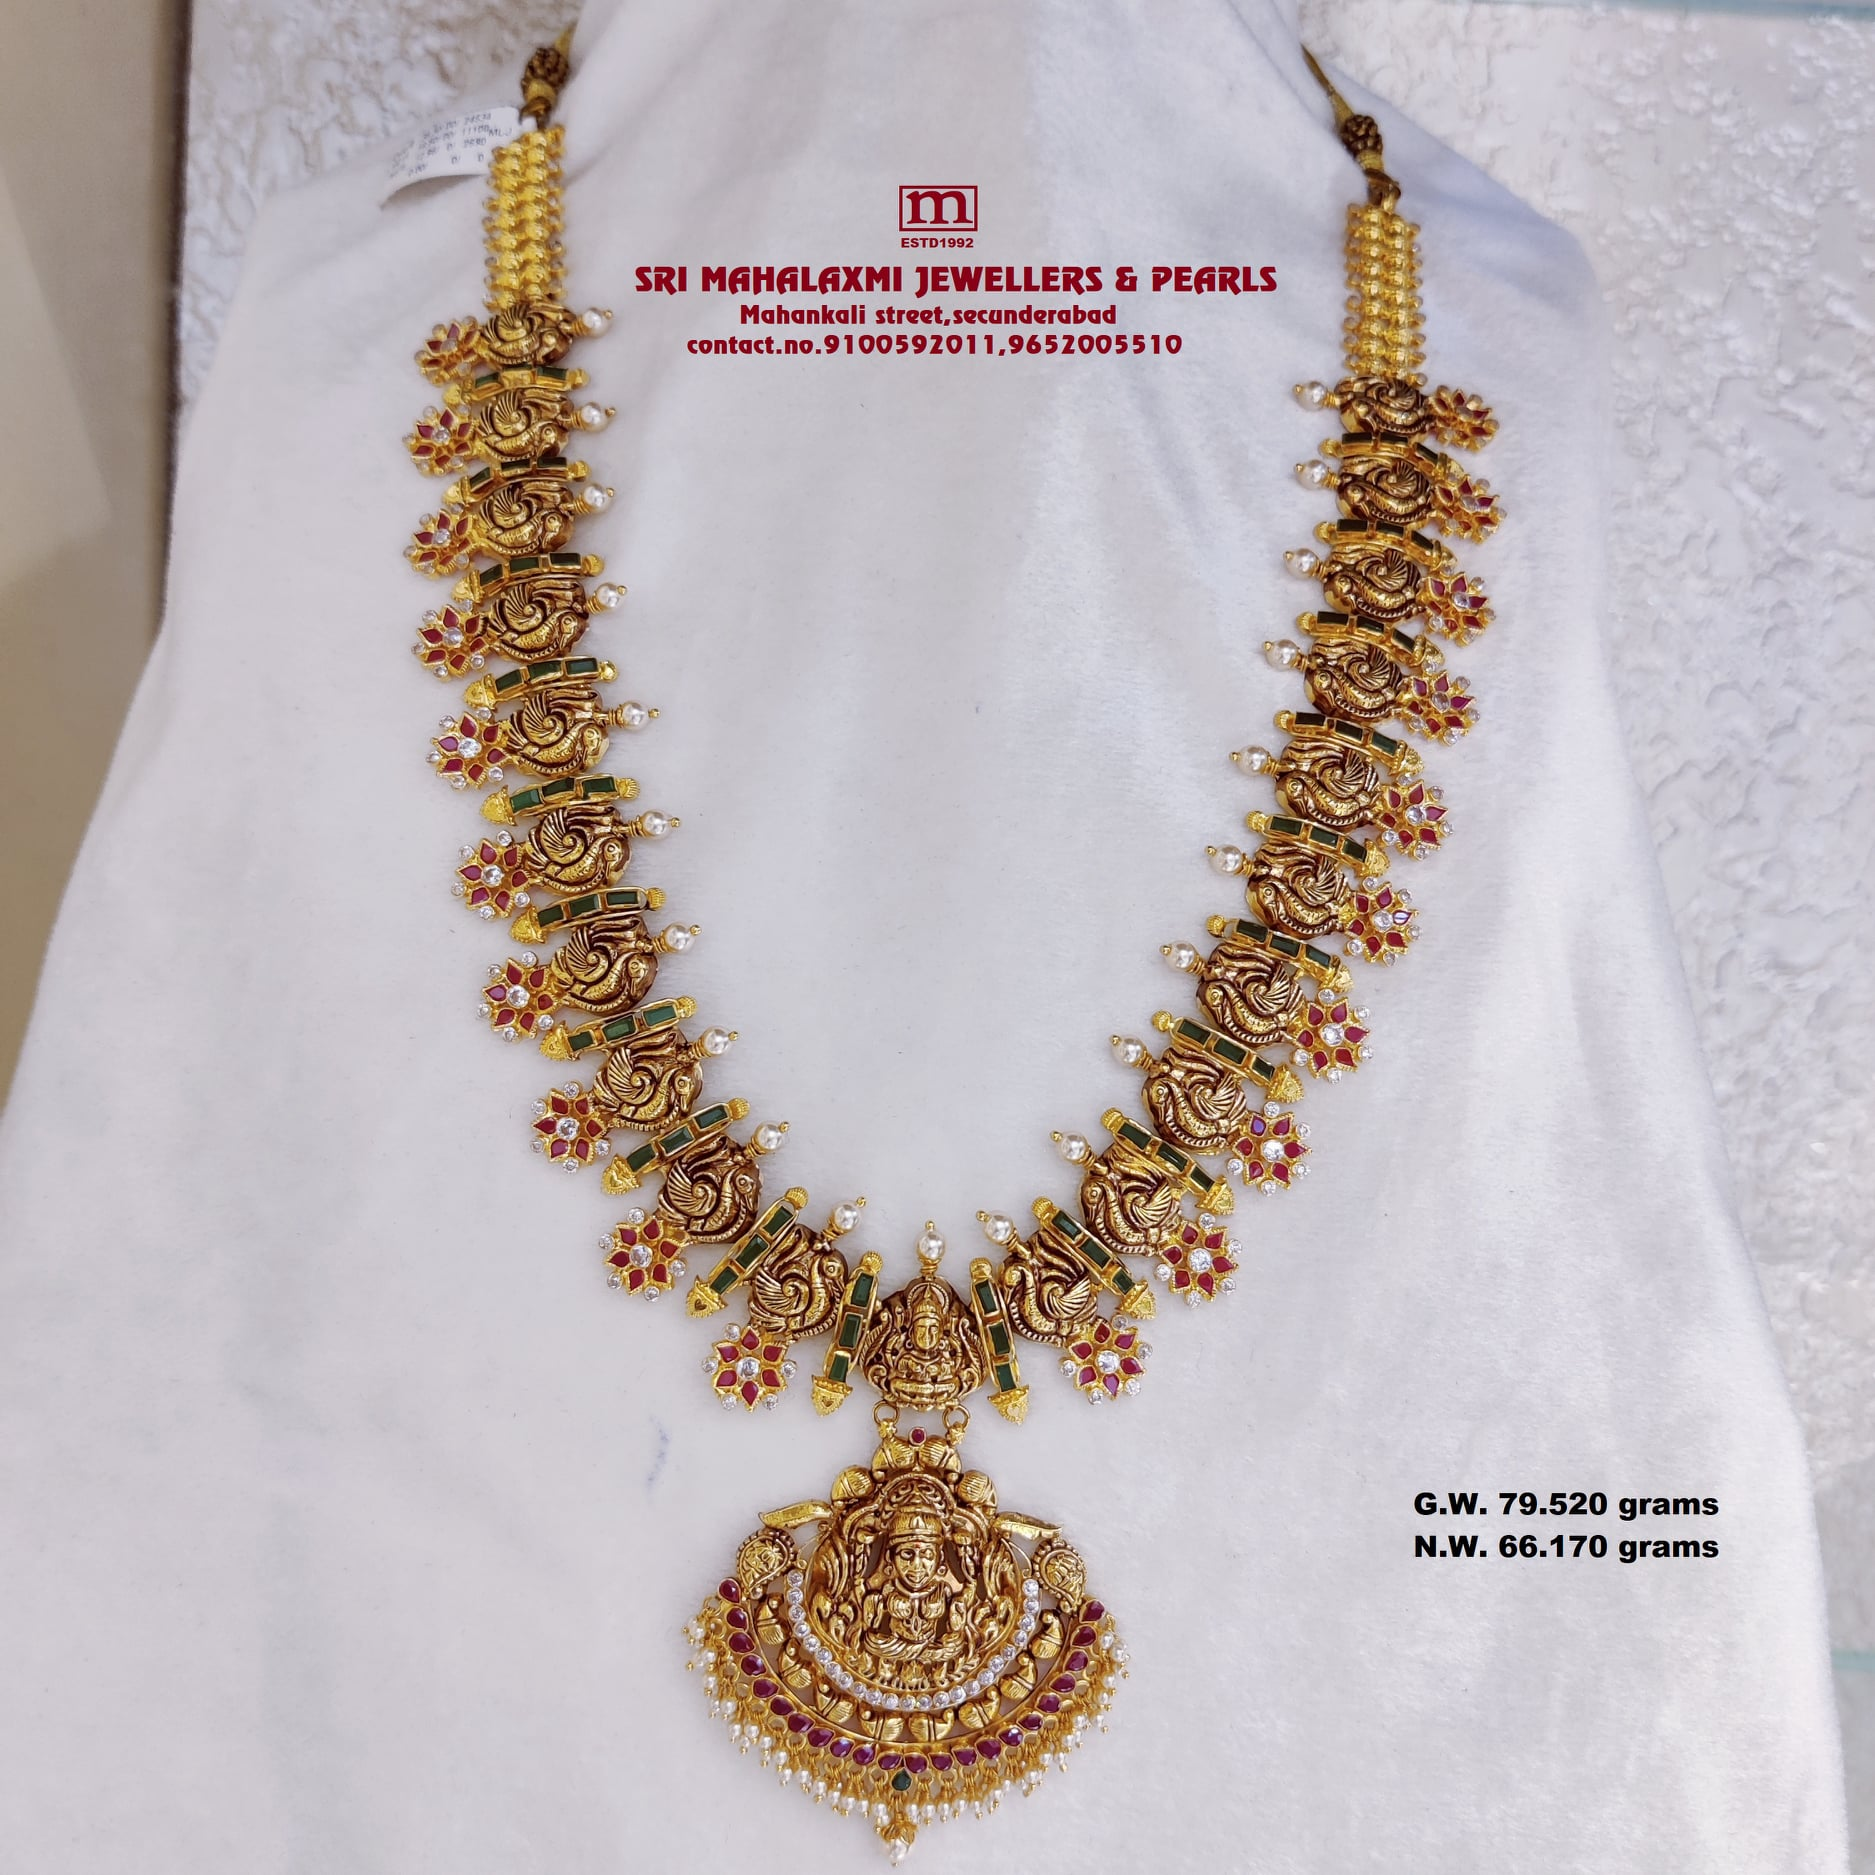 Presenting Here New Collection Added Laxmiji bottu Long Haram In The Stock Studded with Ruby And Emerald. 2021-09-28